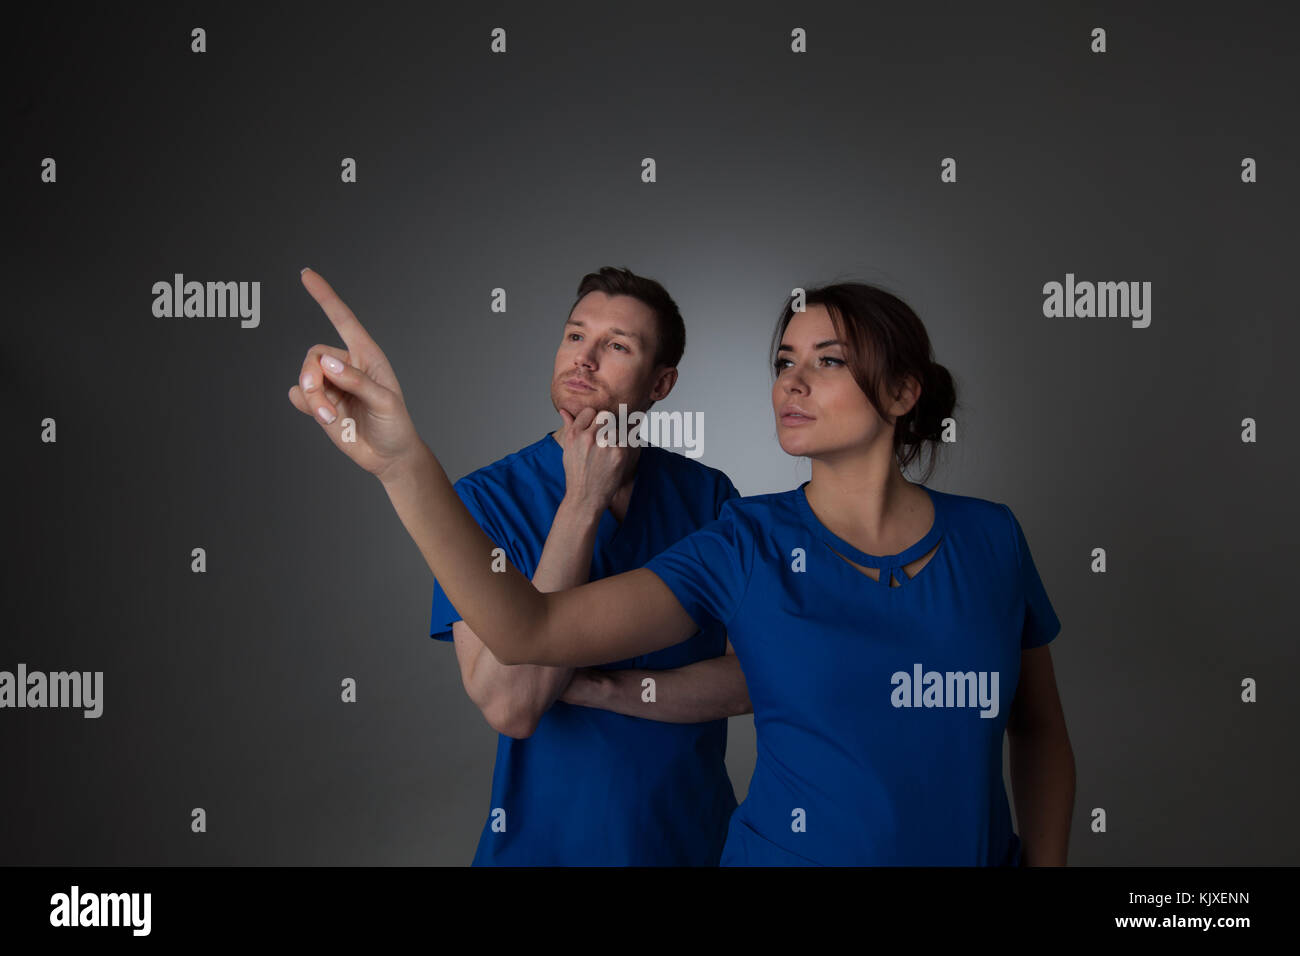 Healthcare, medicine and technology concept - two doctors pointing to something or pressing imaginary button - Stock Image